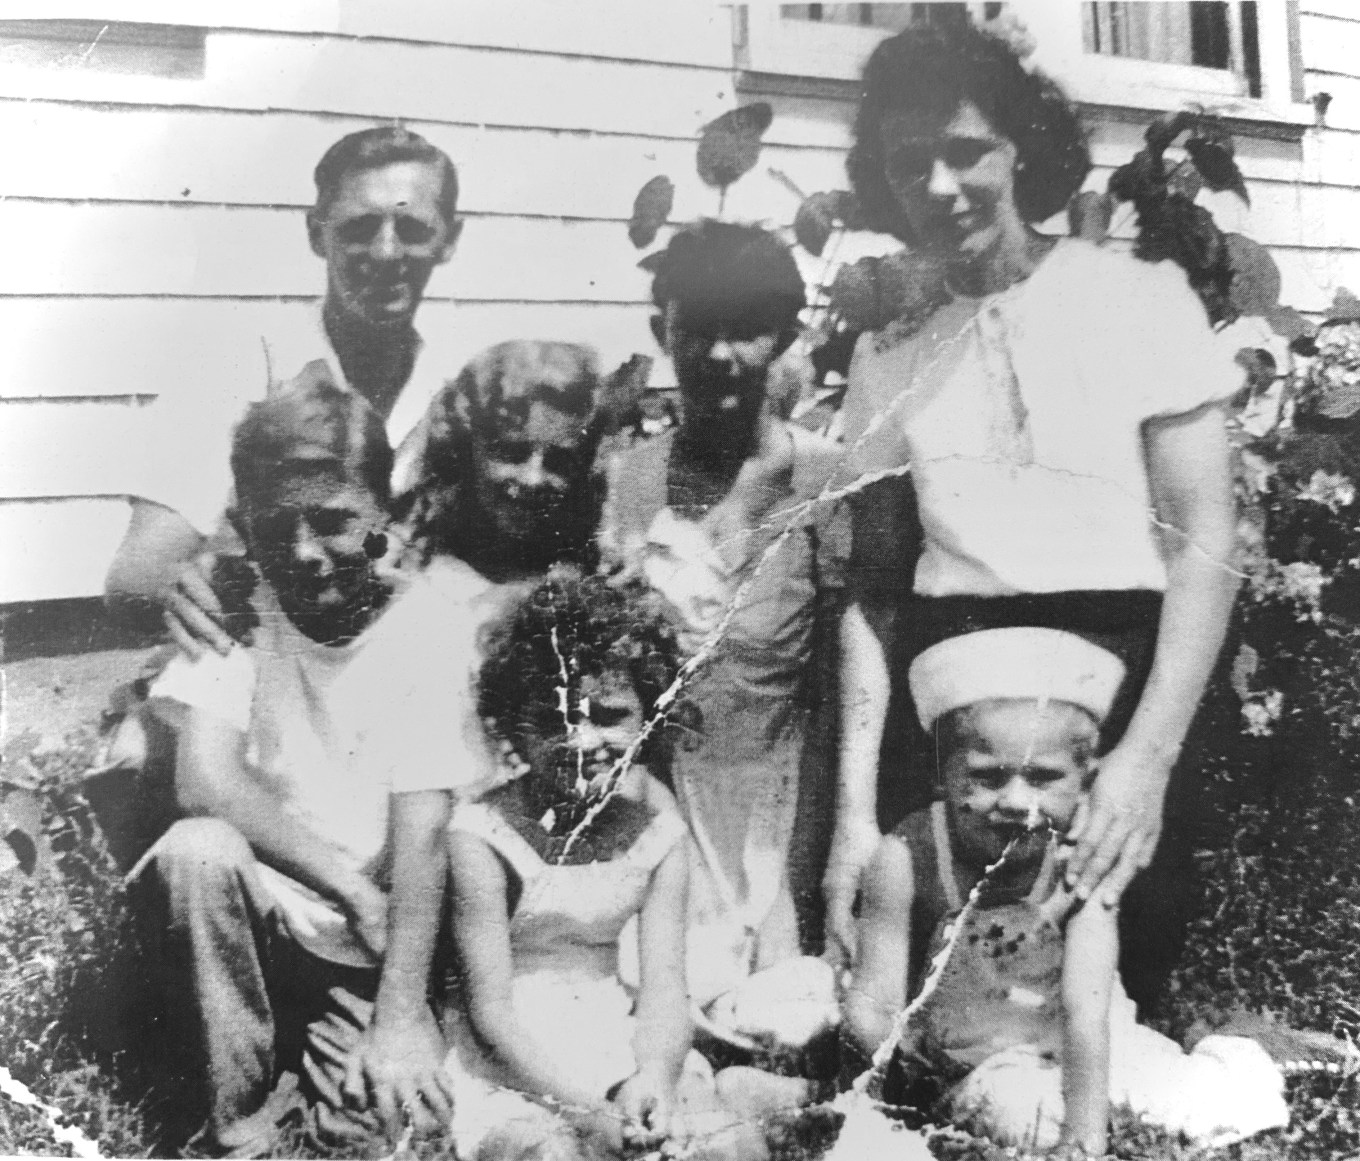 Johnson family at Grandma's house on Overlook Ave. c. 1948